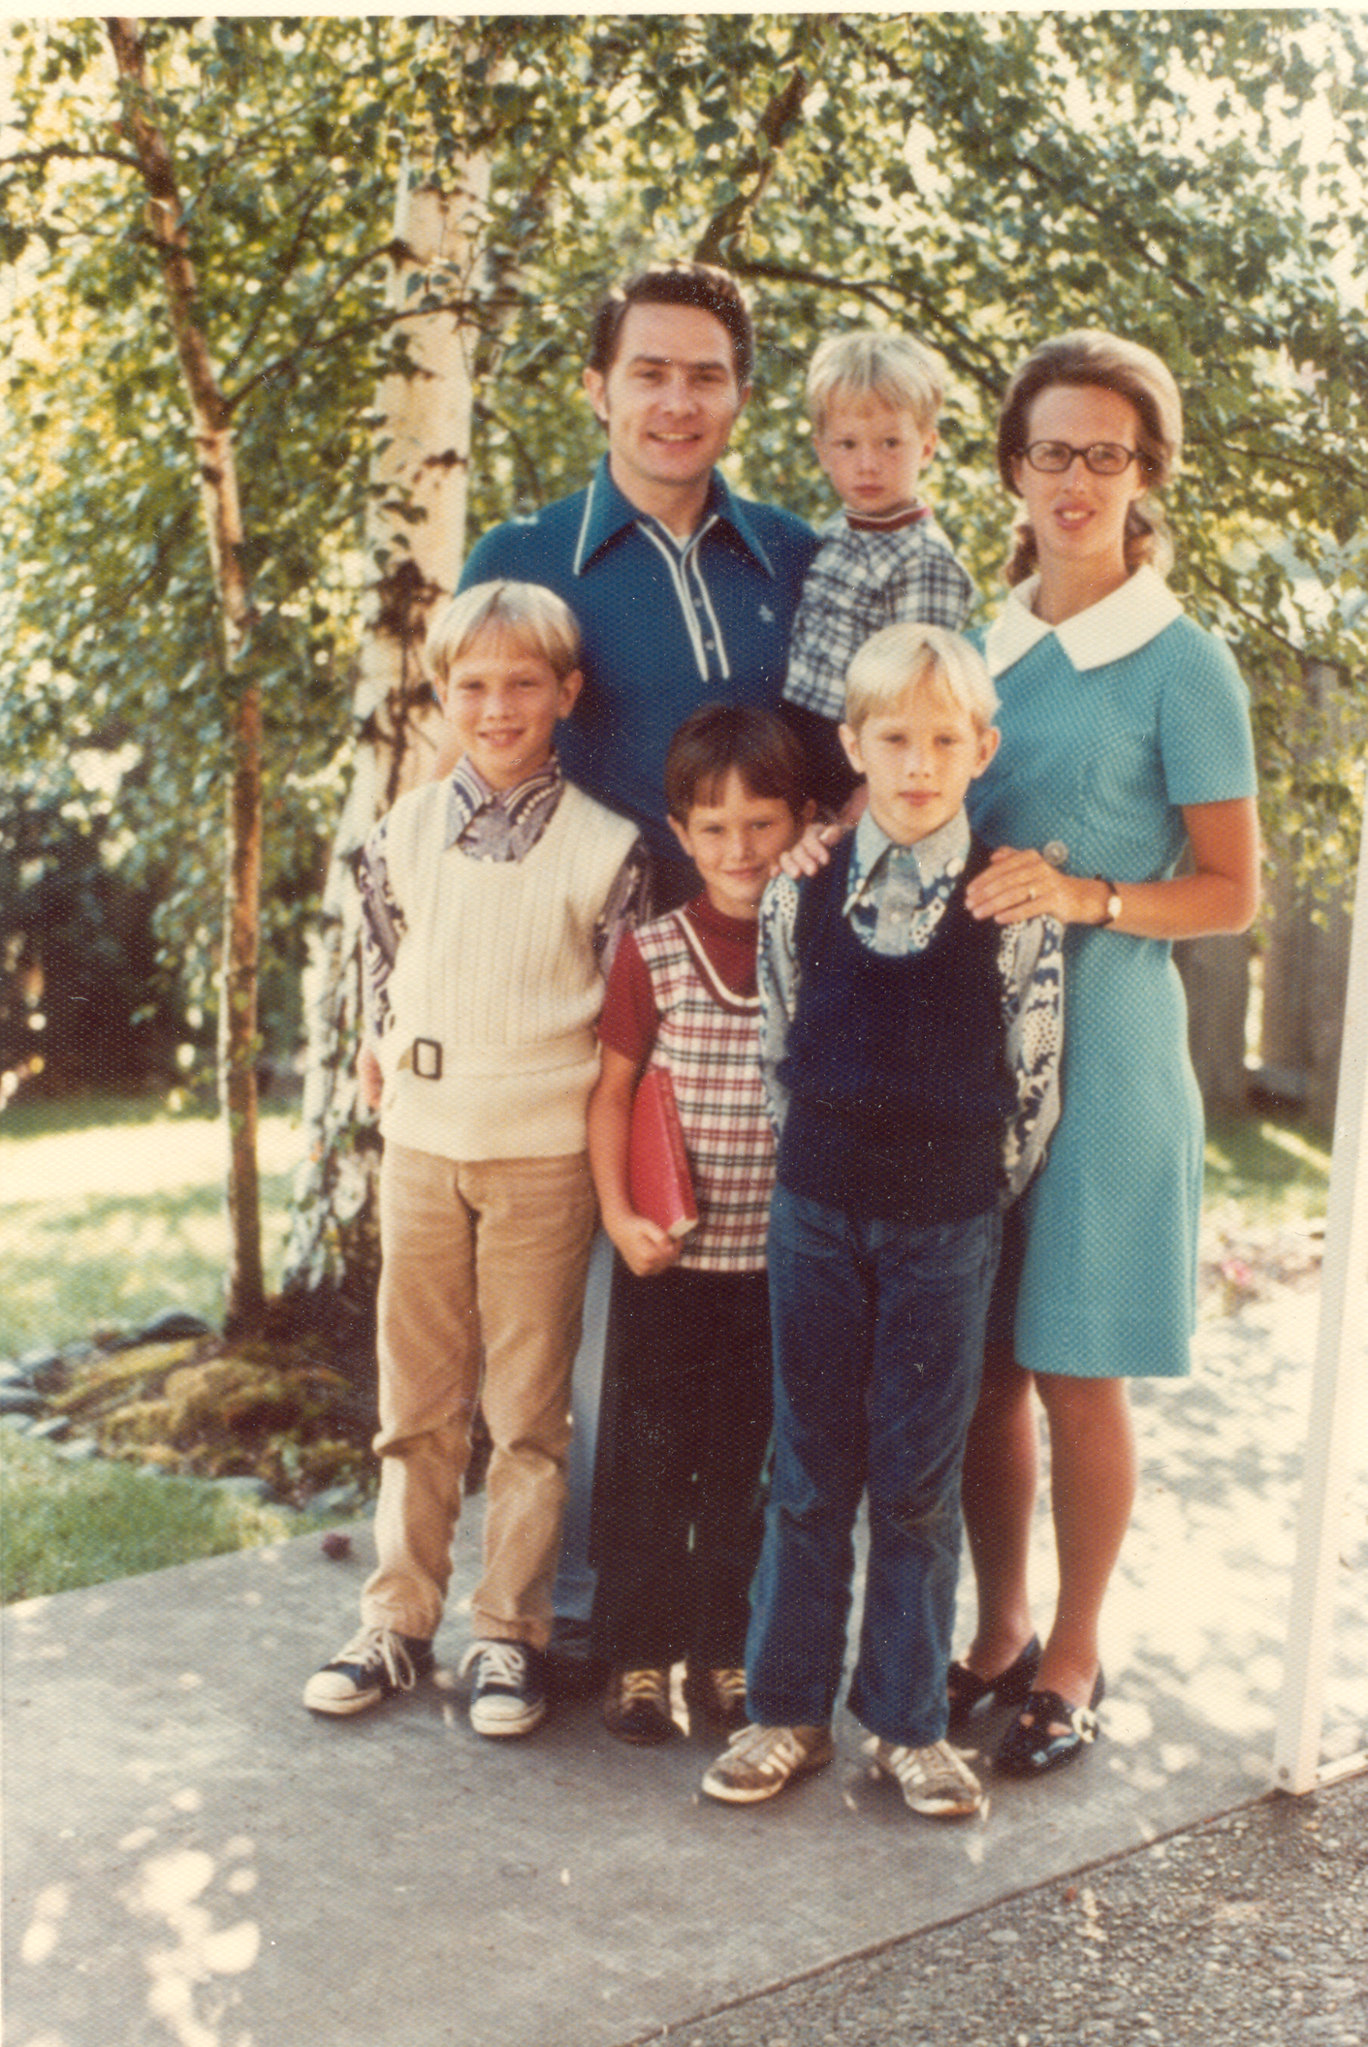 Luis and Pat with their four sons, Kevin, Keith, Andrew, and Steven.